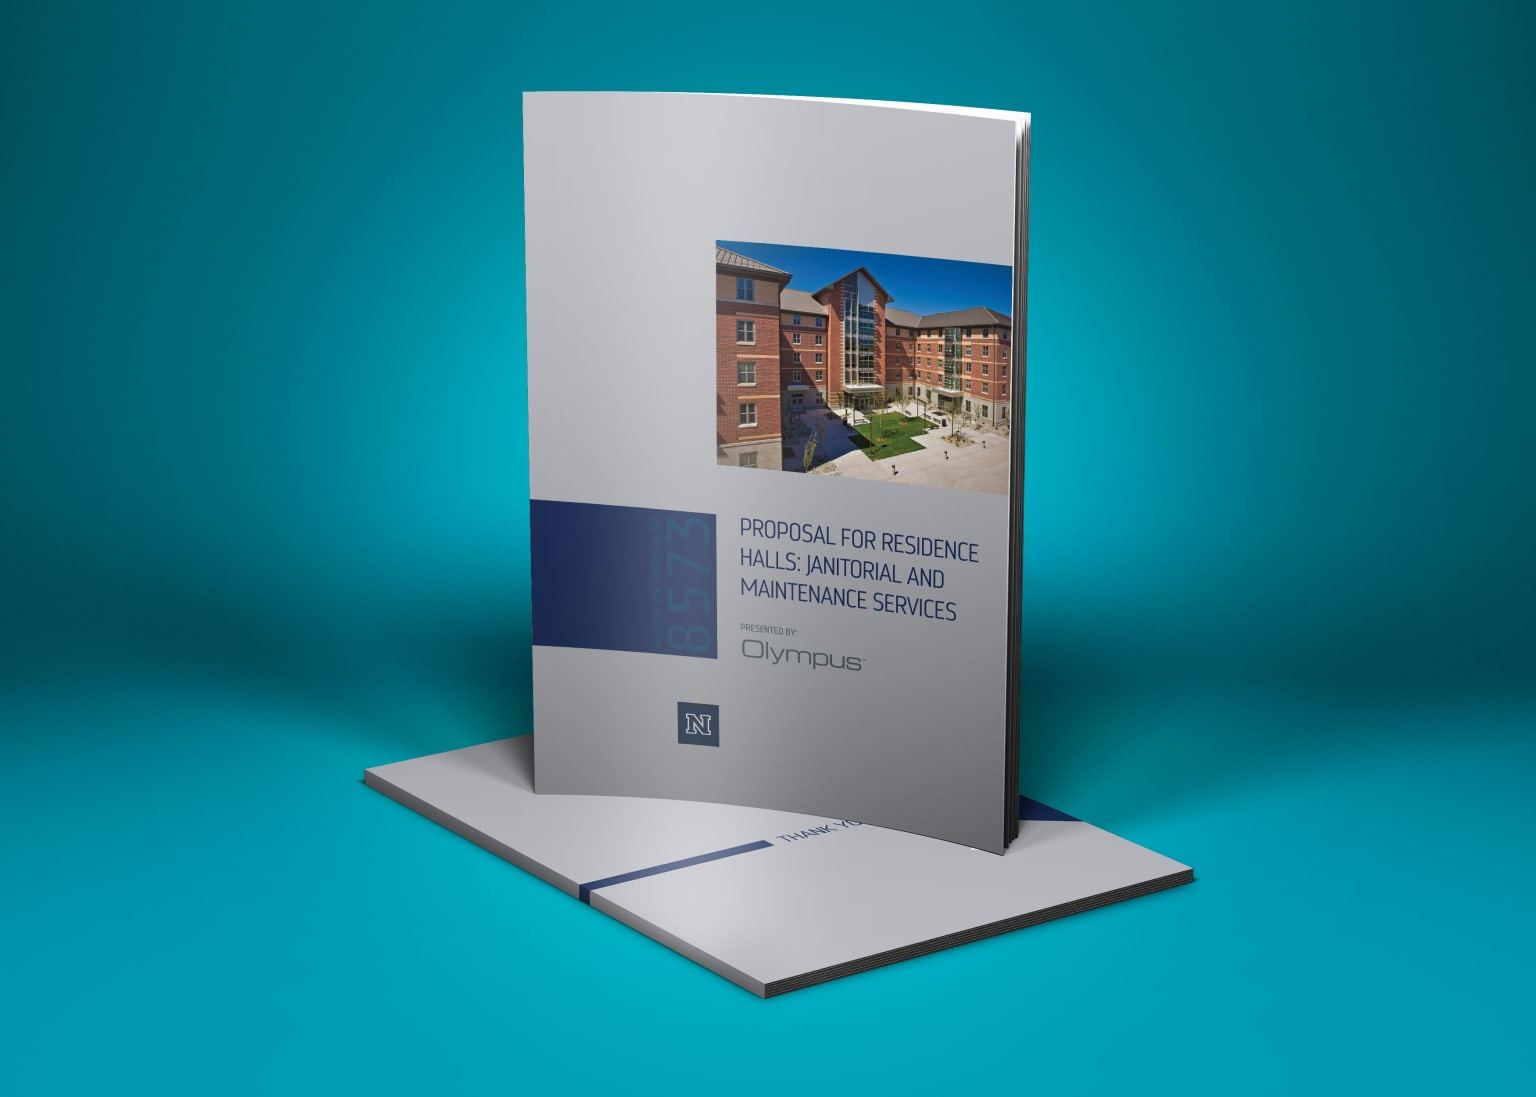 University of Nevada Proposal for Business